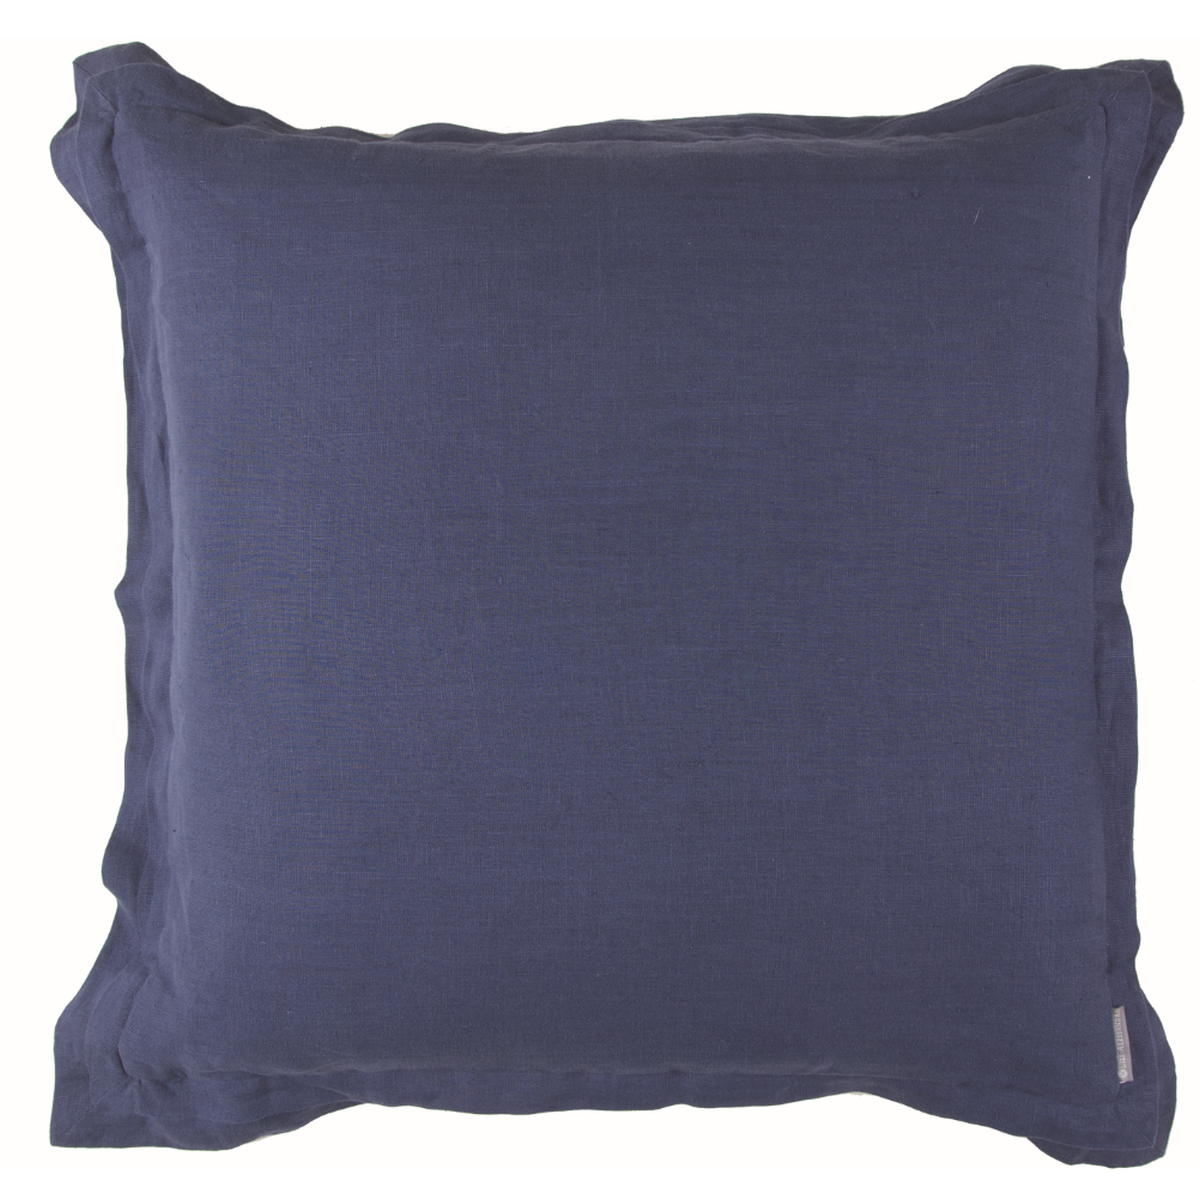 What Size Pillow Fits A Euro Sham